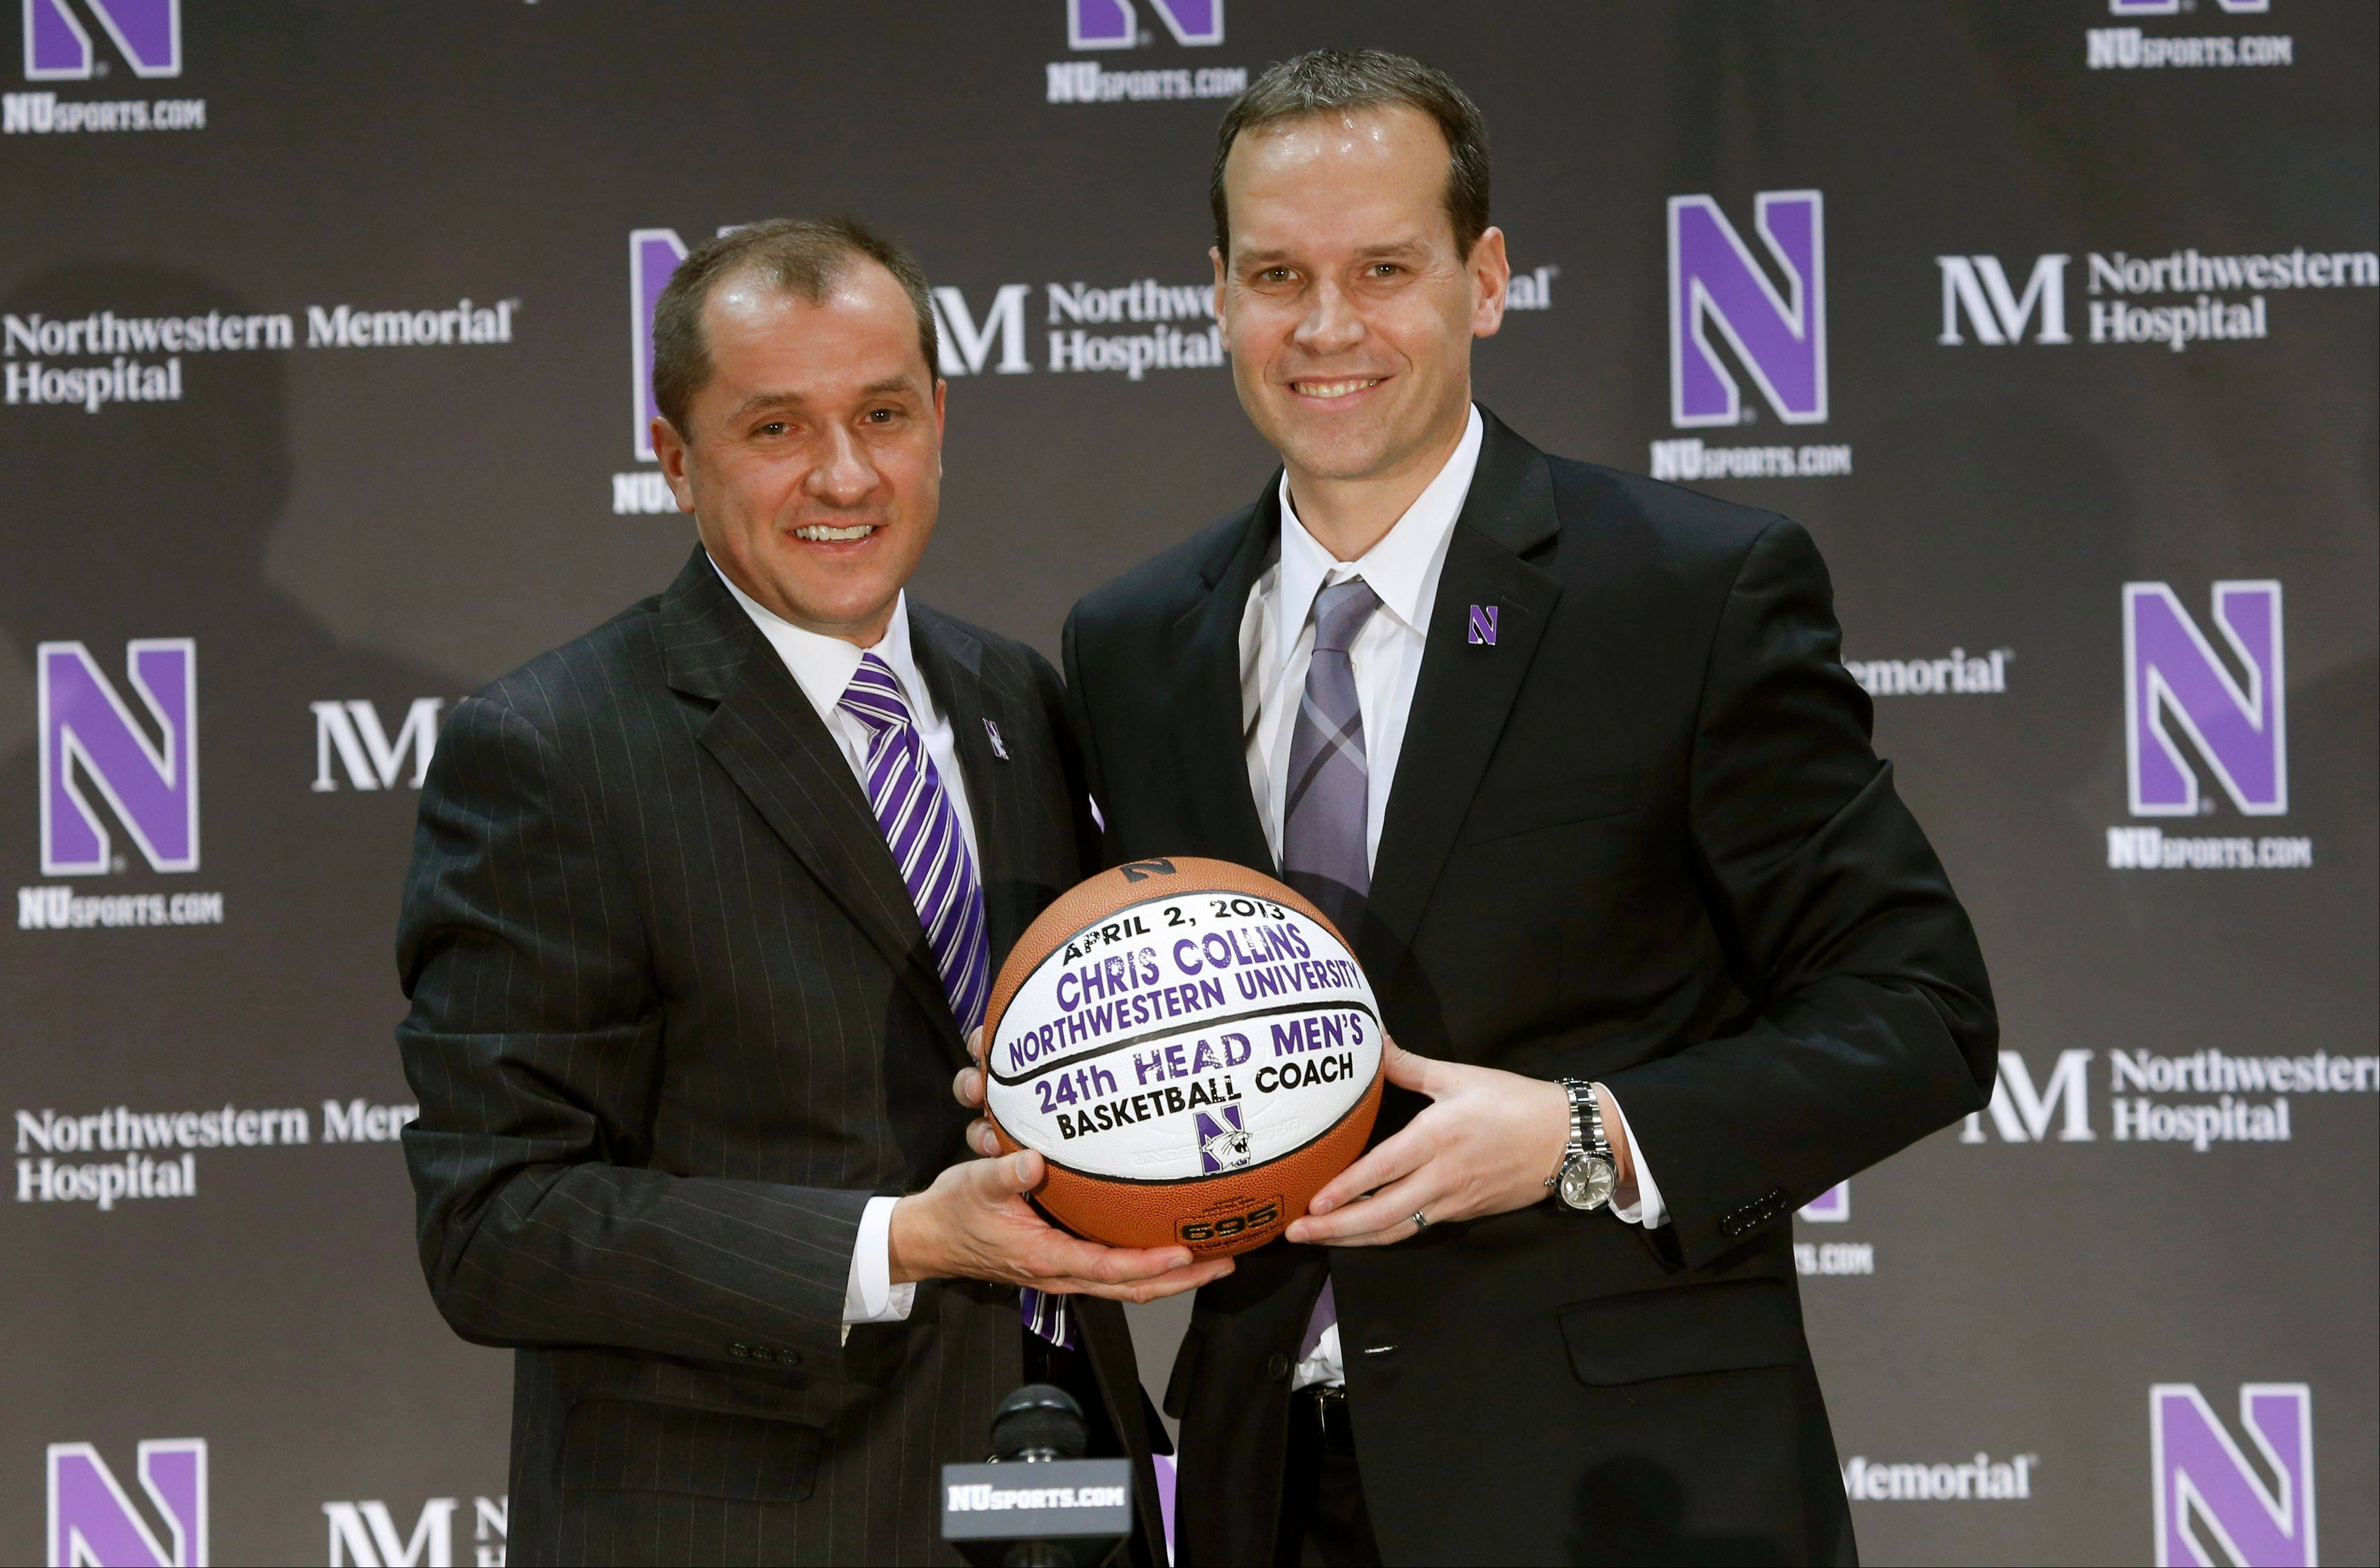 Northwestern University Athletic Director Jim Phillips, left, stands with former Duke University assistant coach Chris Collins after Phillips introduced Collins as the new head men's basketball coach at Northwestern during a news conference Tuesday, April 2, 2013 in Evanston, Ill. (AP Photo/Charles Rex Arbogast)